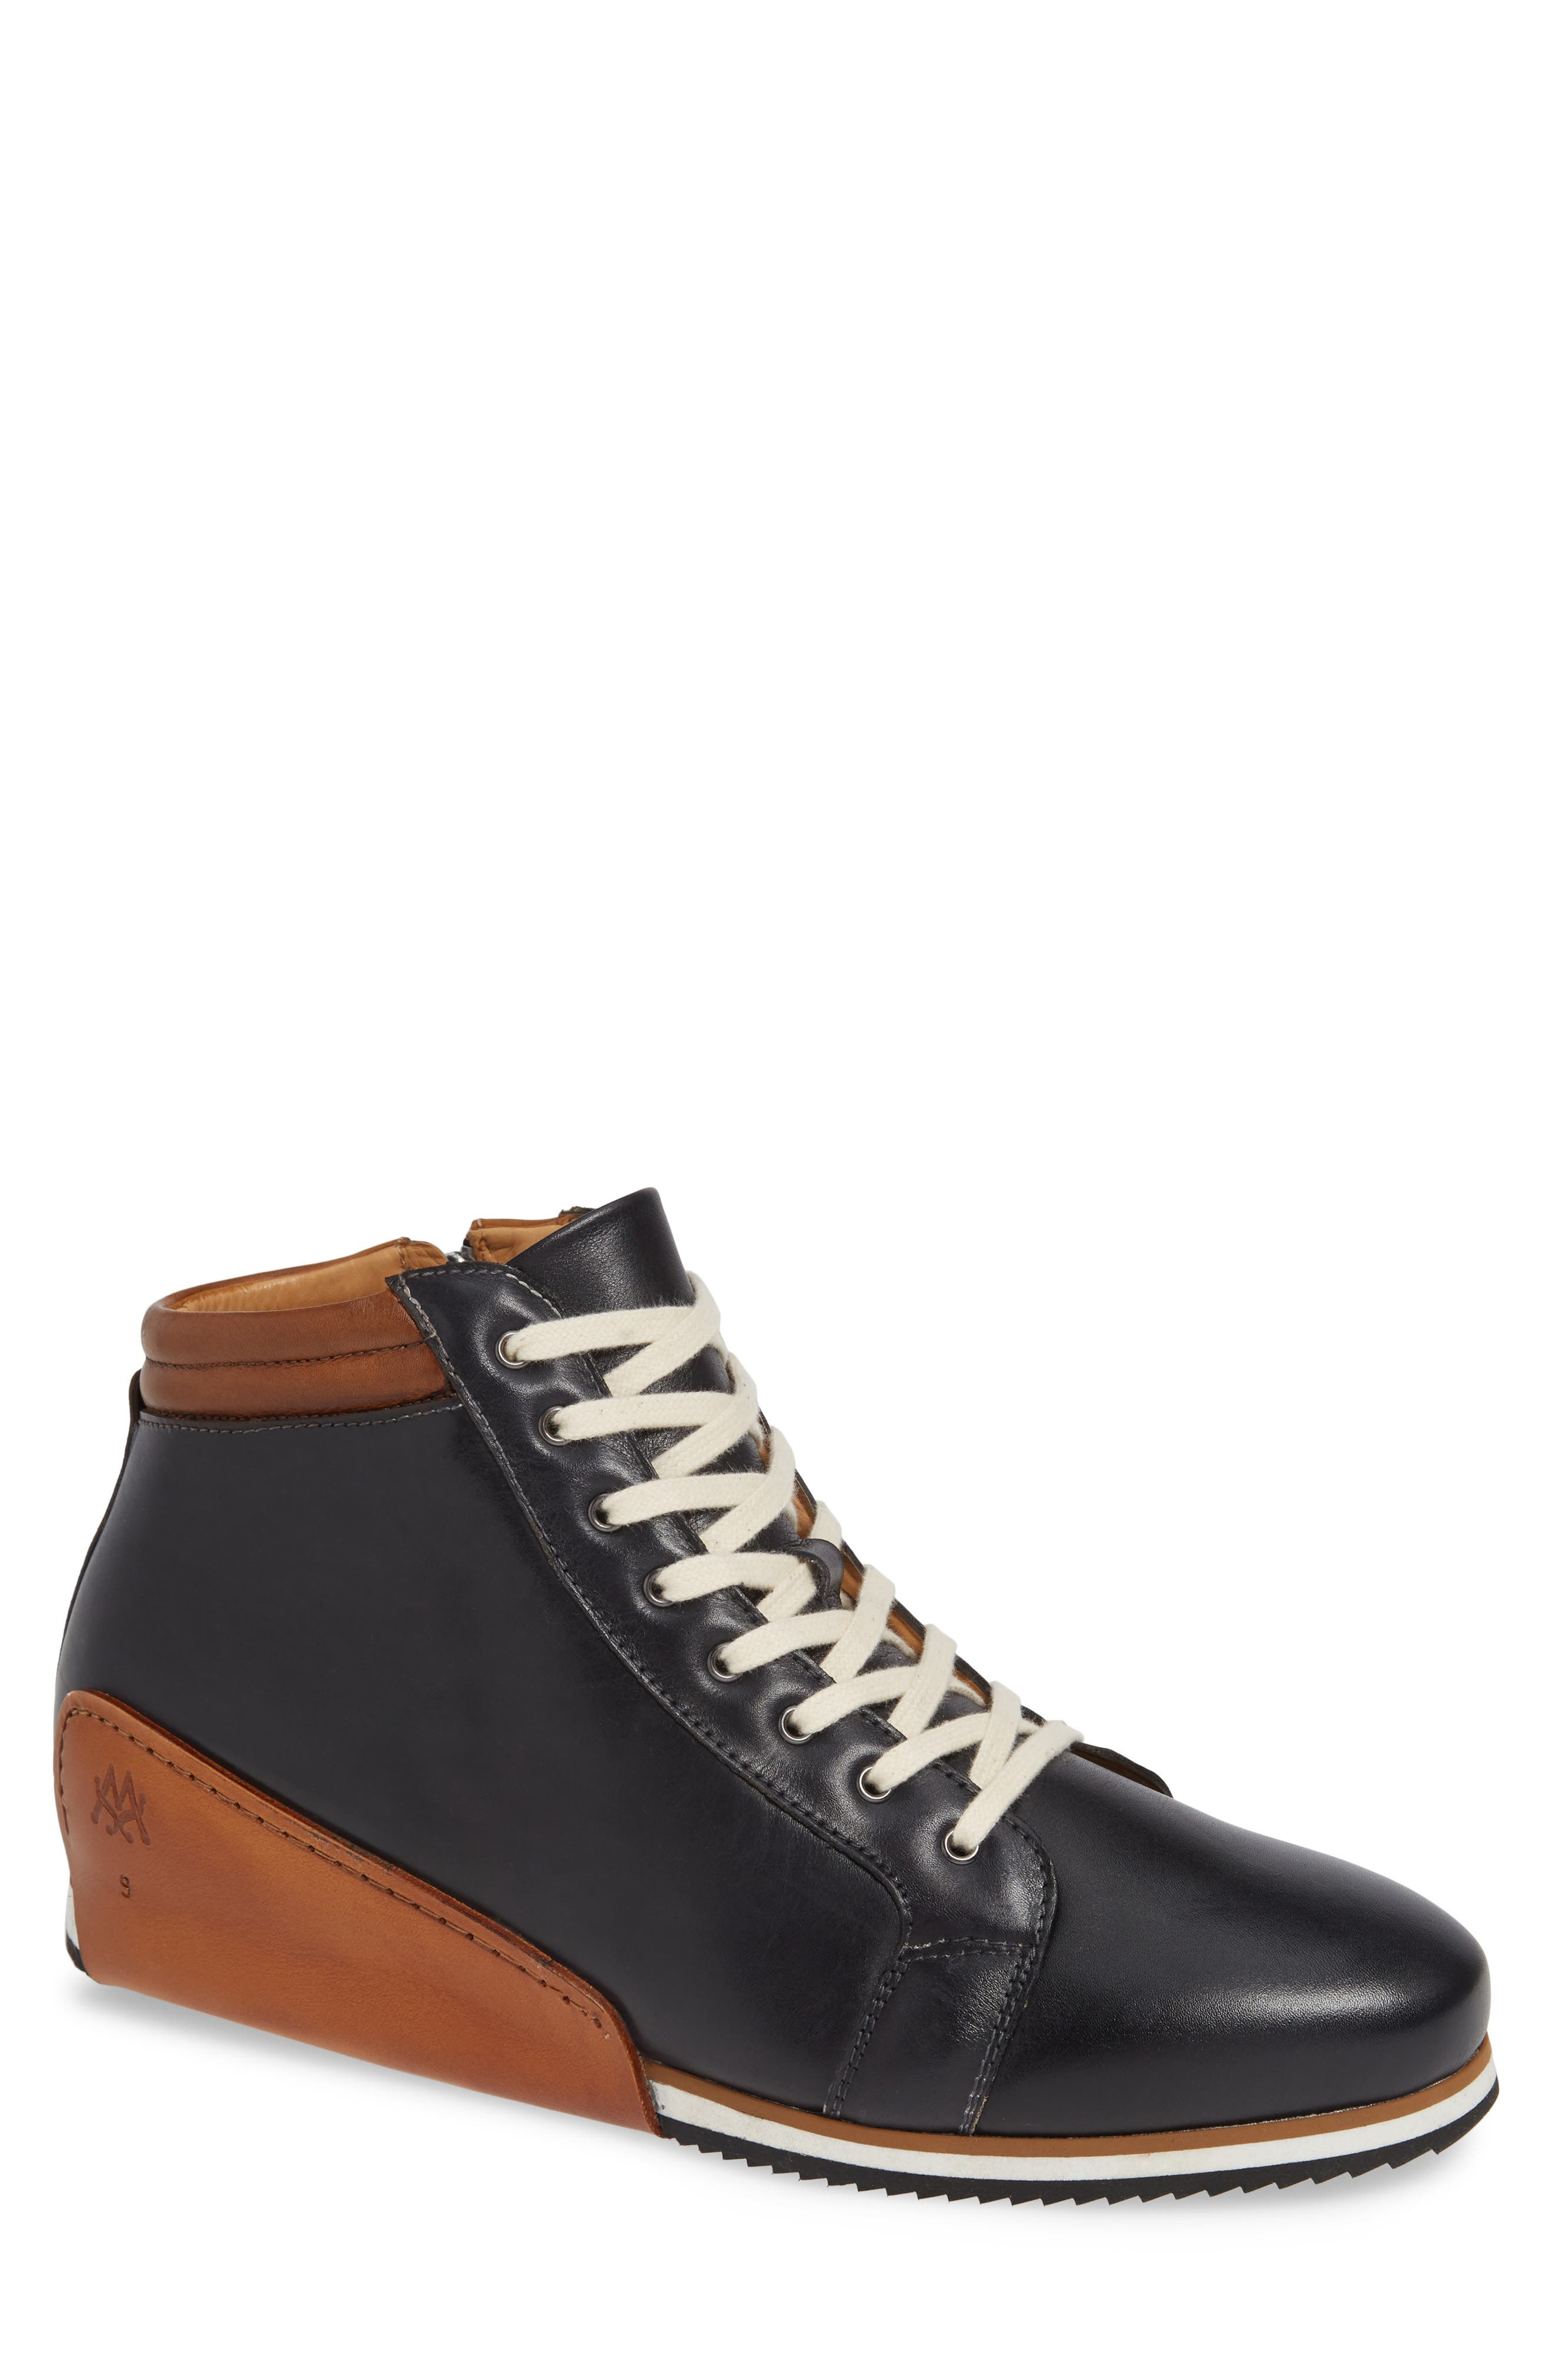 Niro Sneaker in Black/ Tan Leather